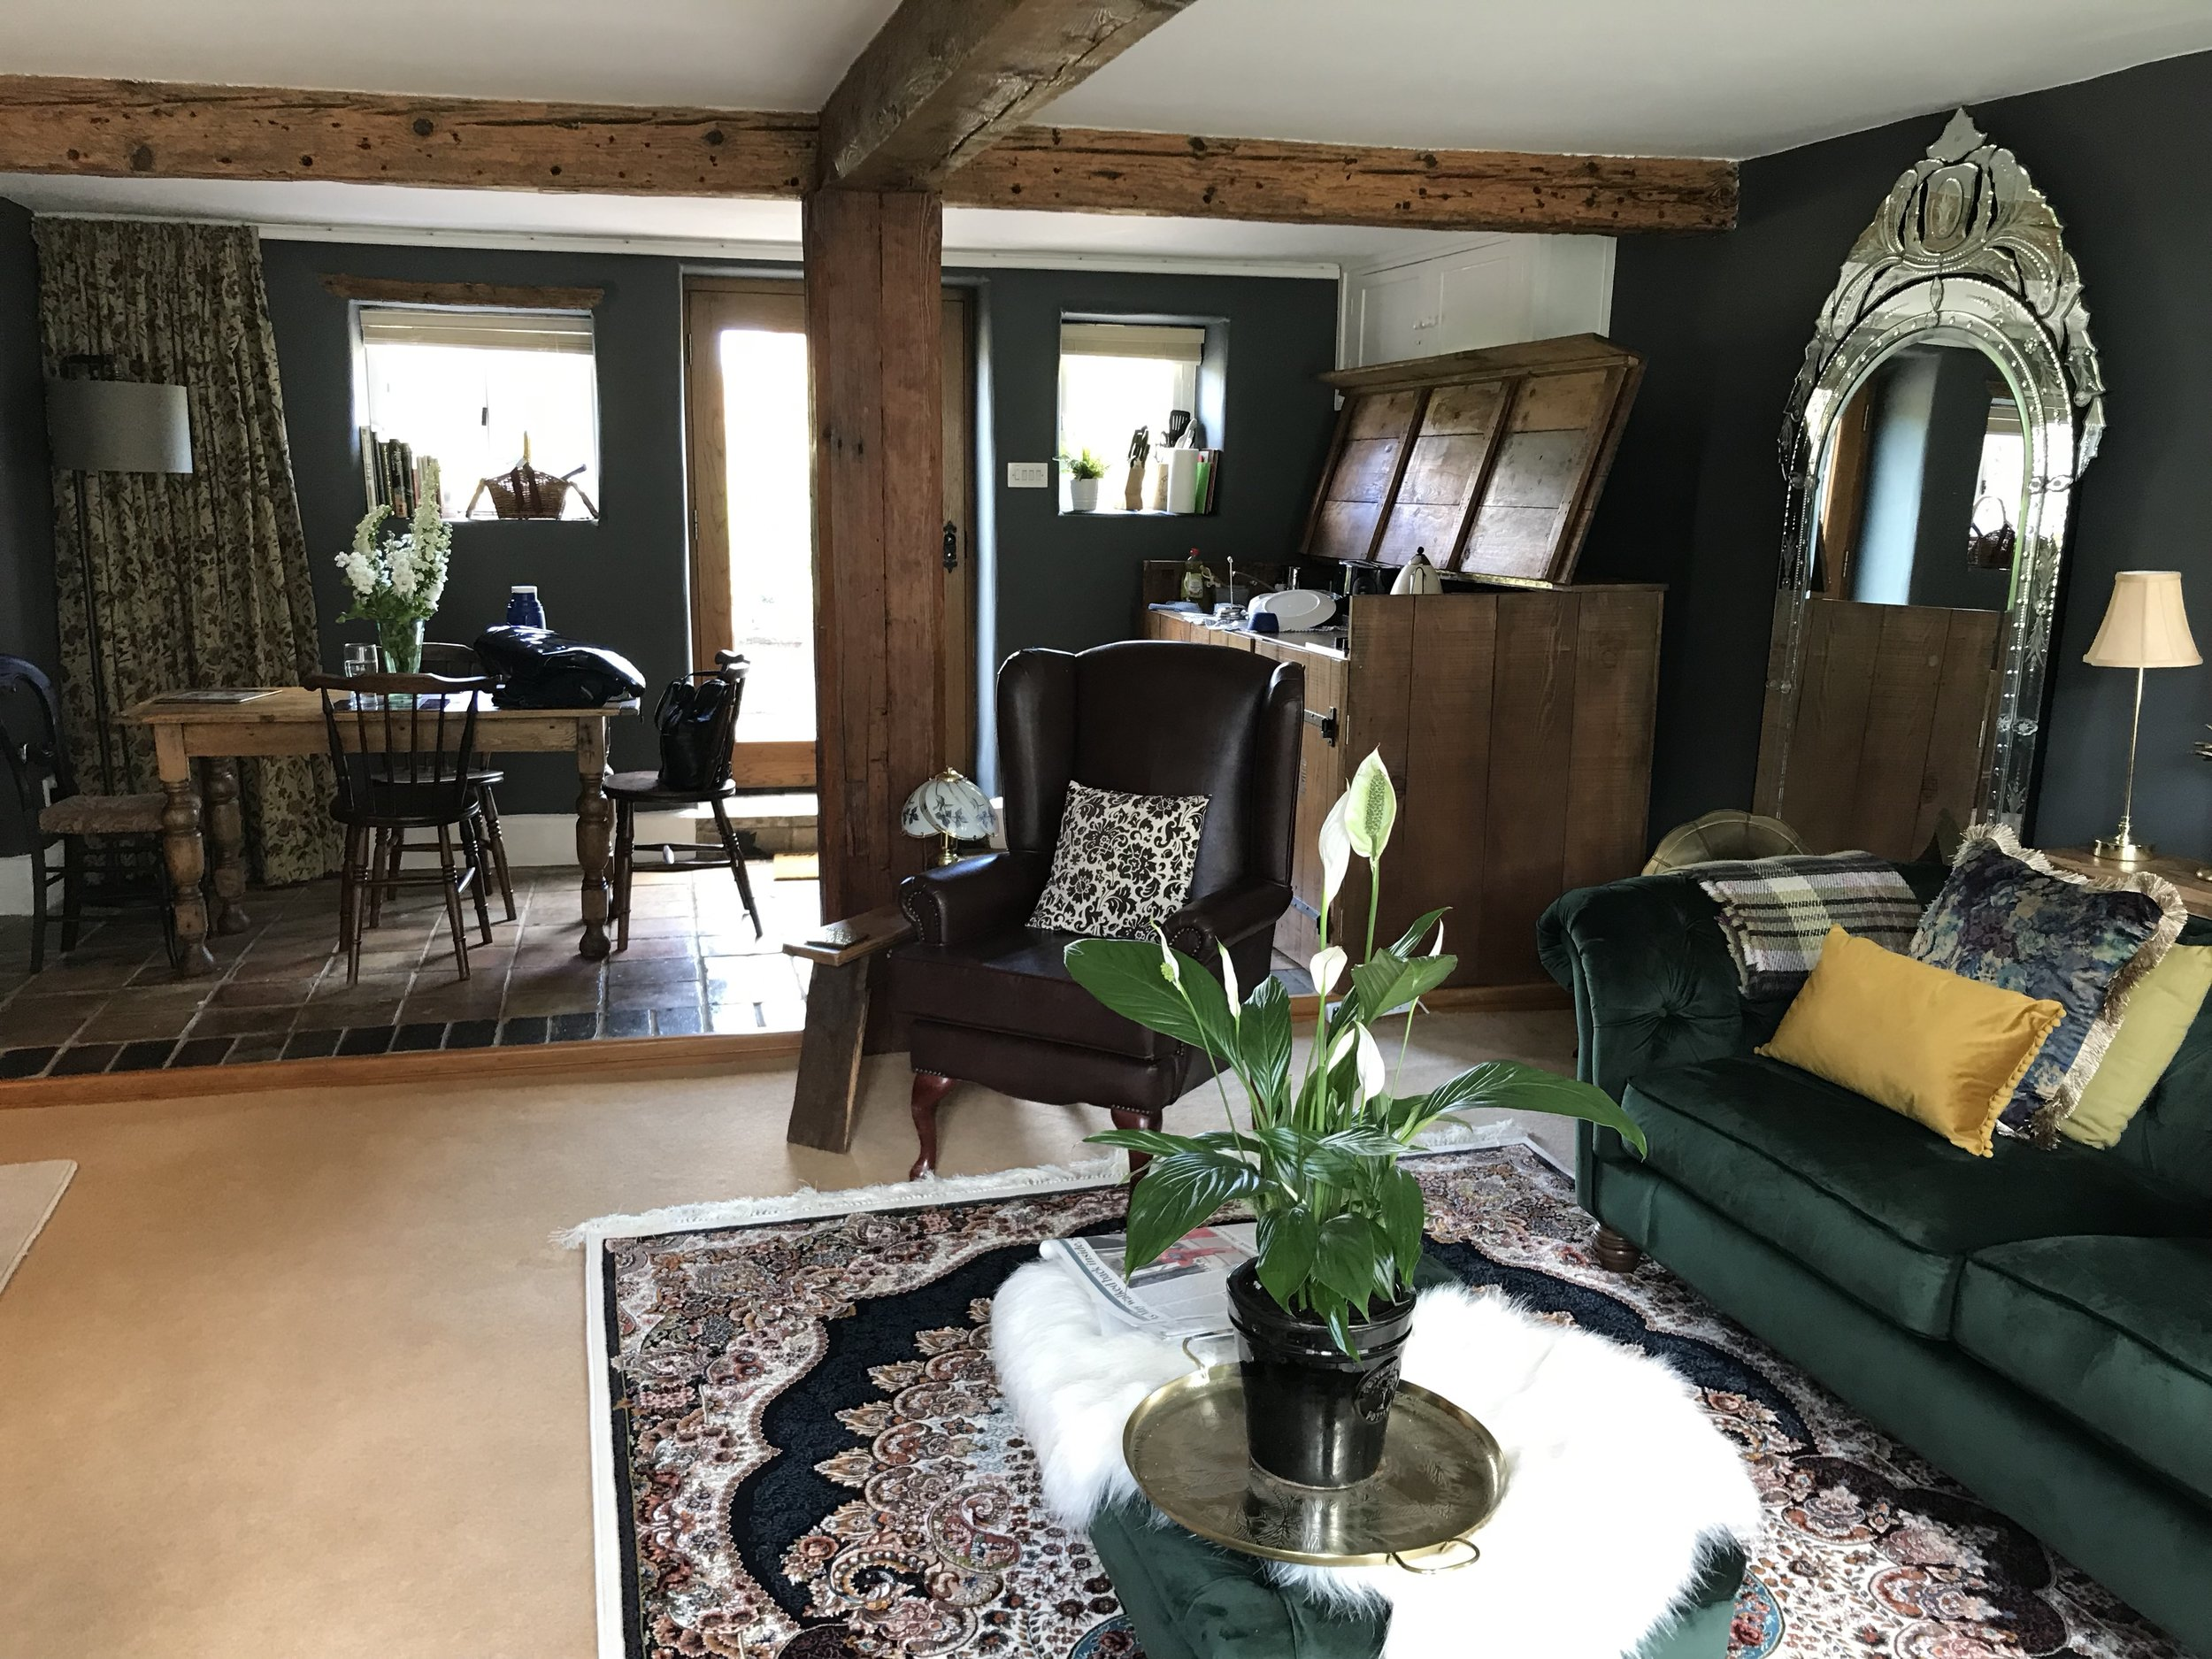 The open-plan living, dining and kitchen room in our beautifully decorated and furnished 16th century Airbnb